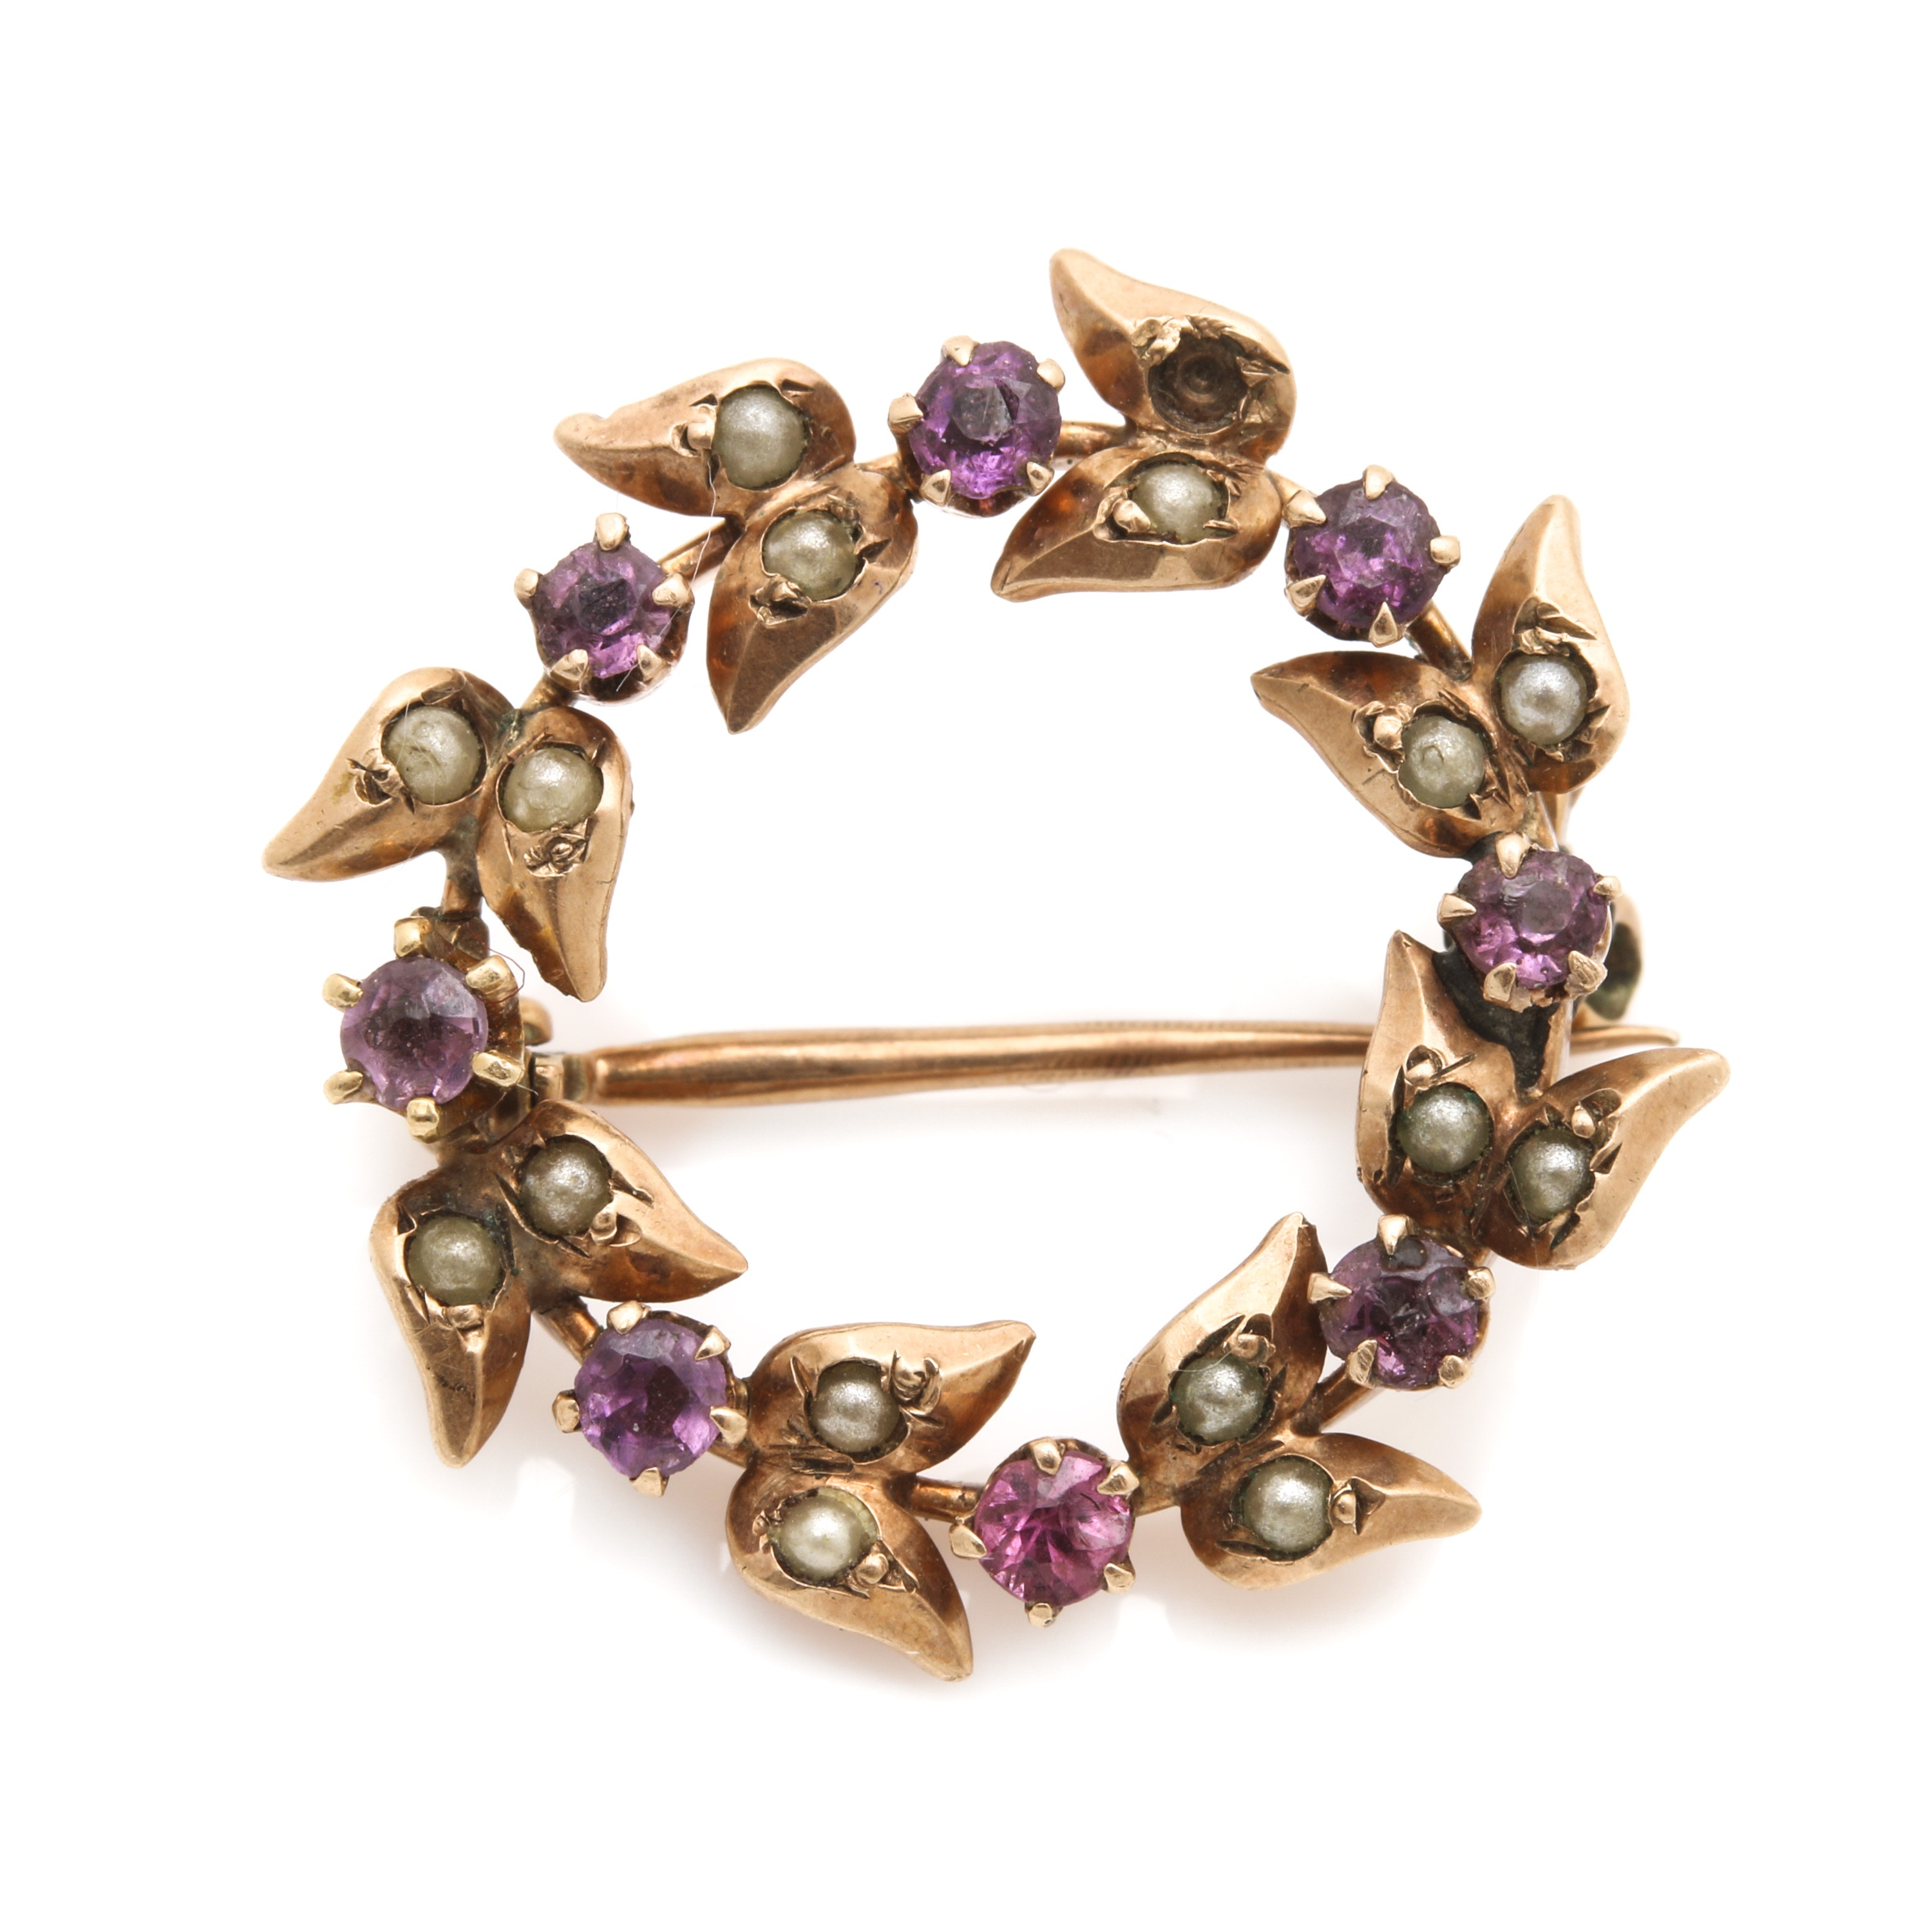 10K Yellow Gold Quartz Doublet and Seed Pearl Wreath Brooch